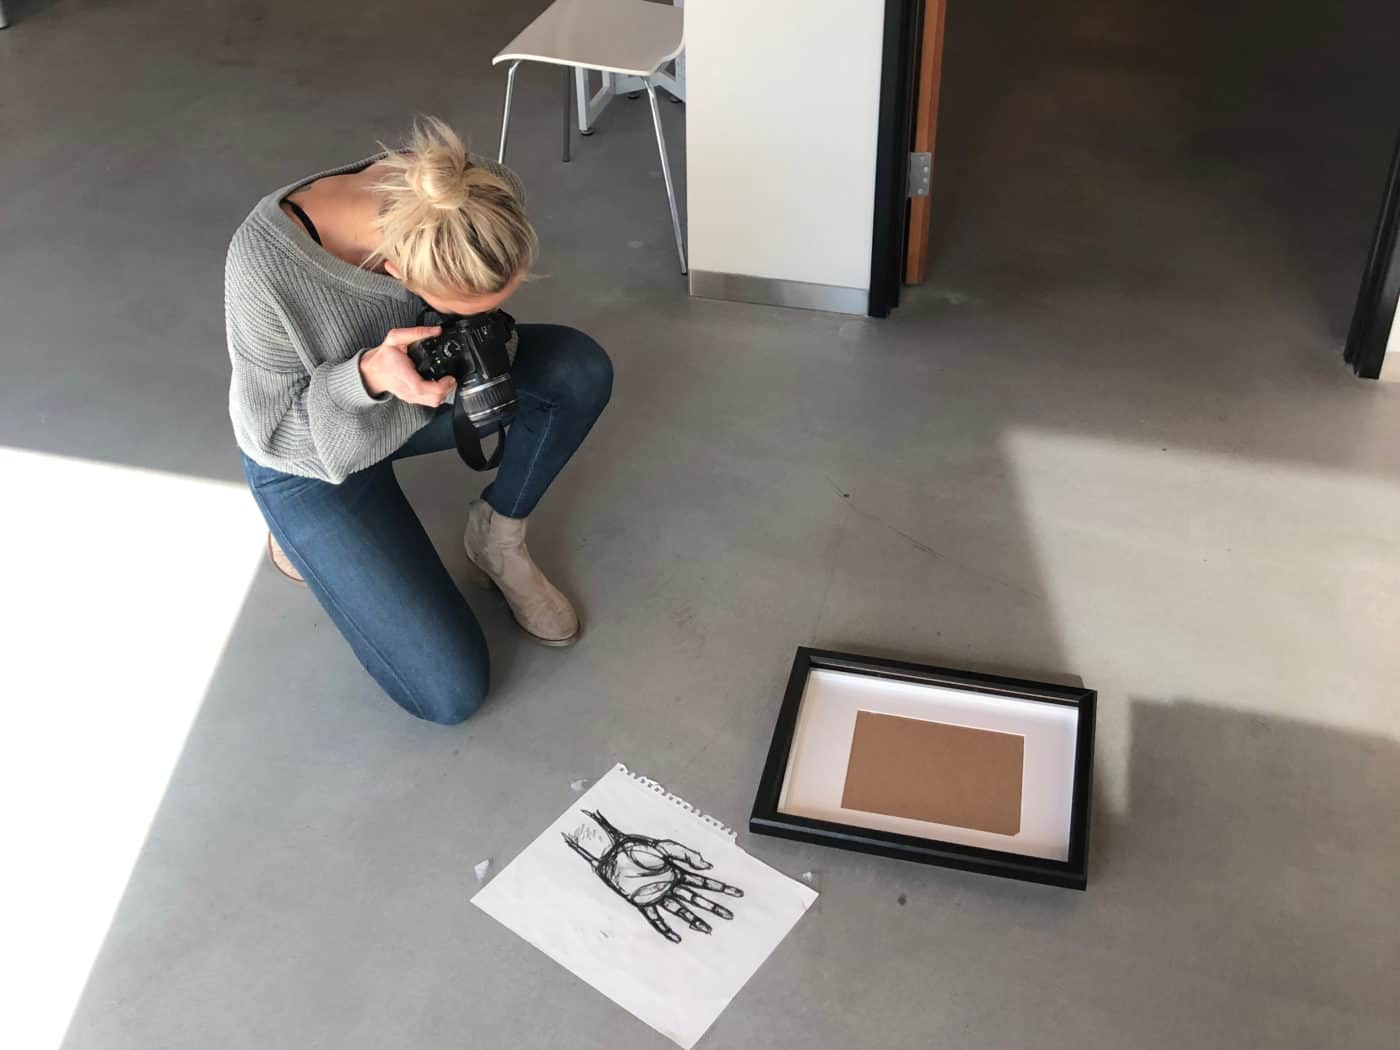 a woman taking a photograph of a drawing of a hand